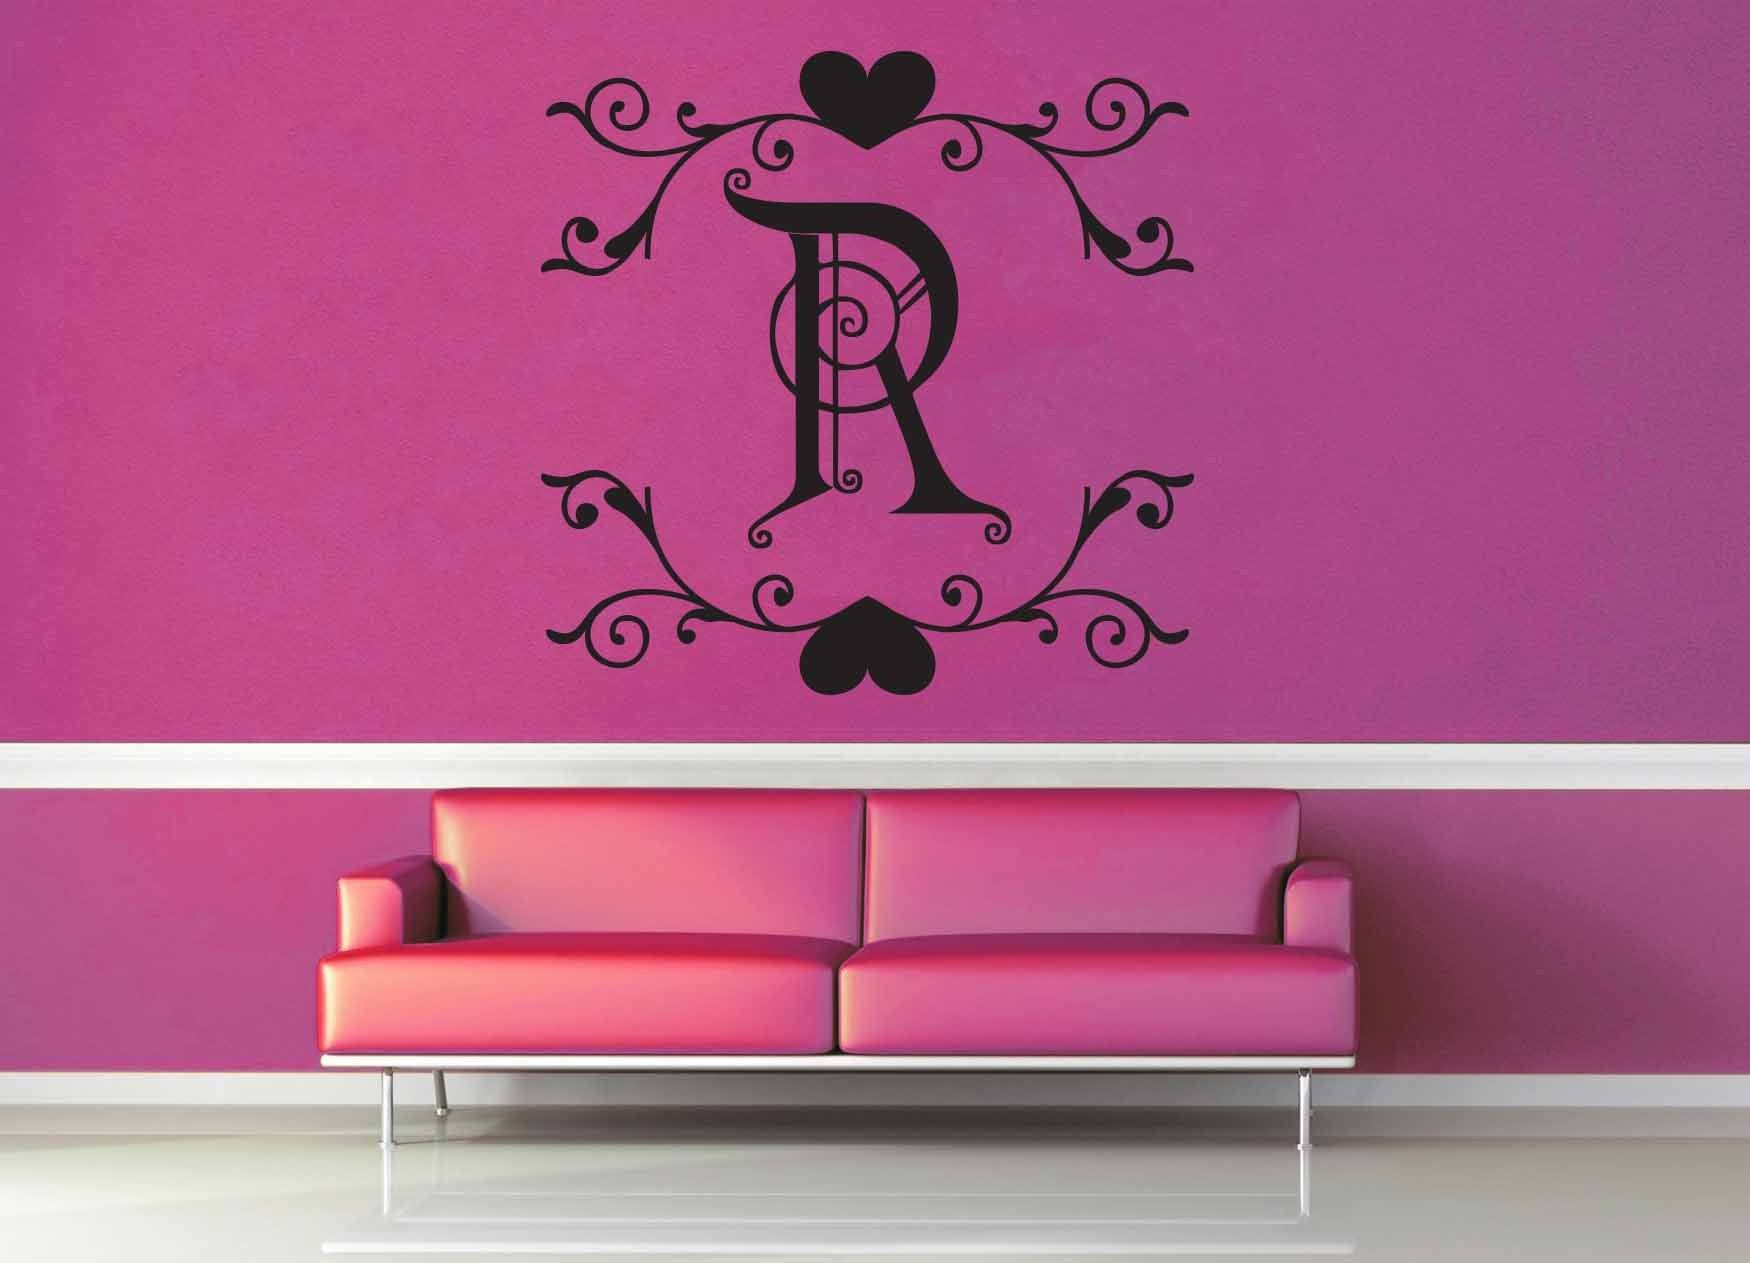 Fantasy Monogram - R - Wall Decal